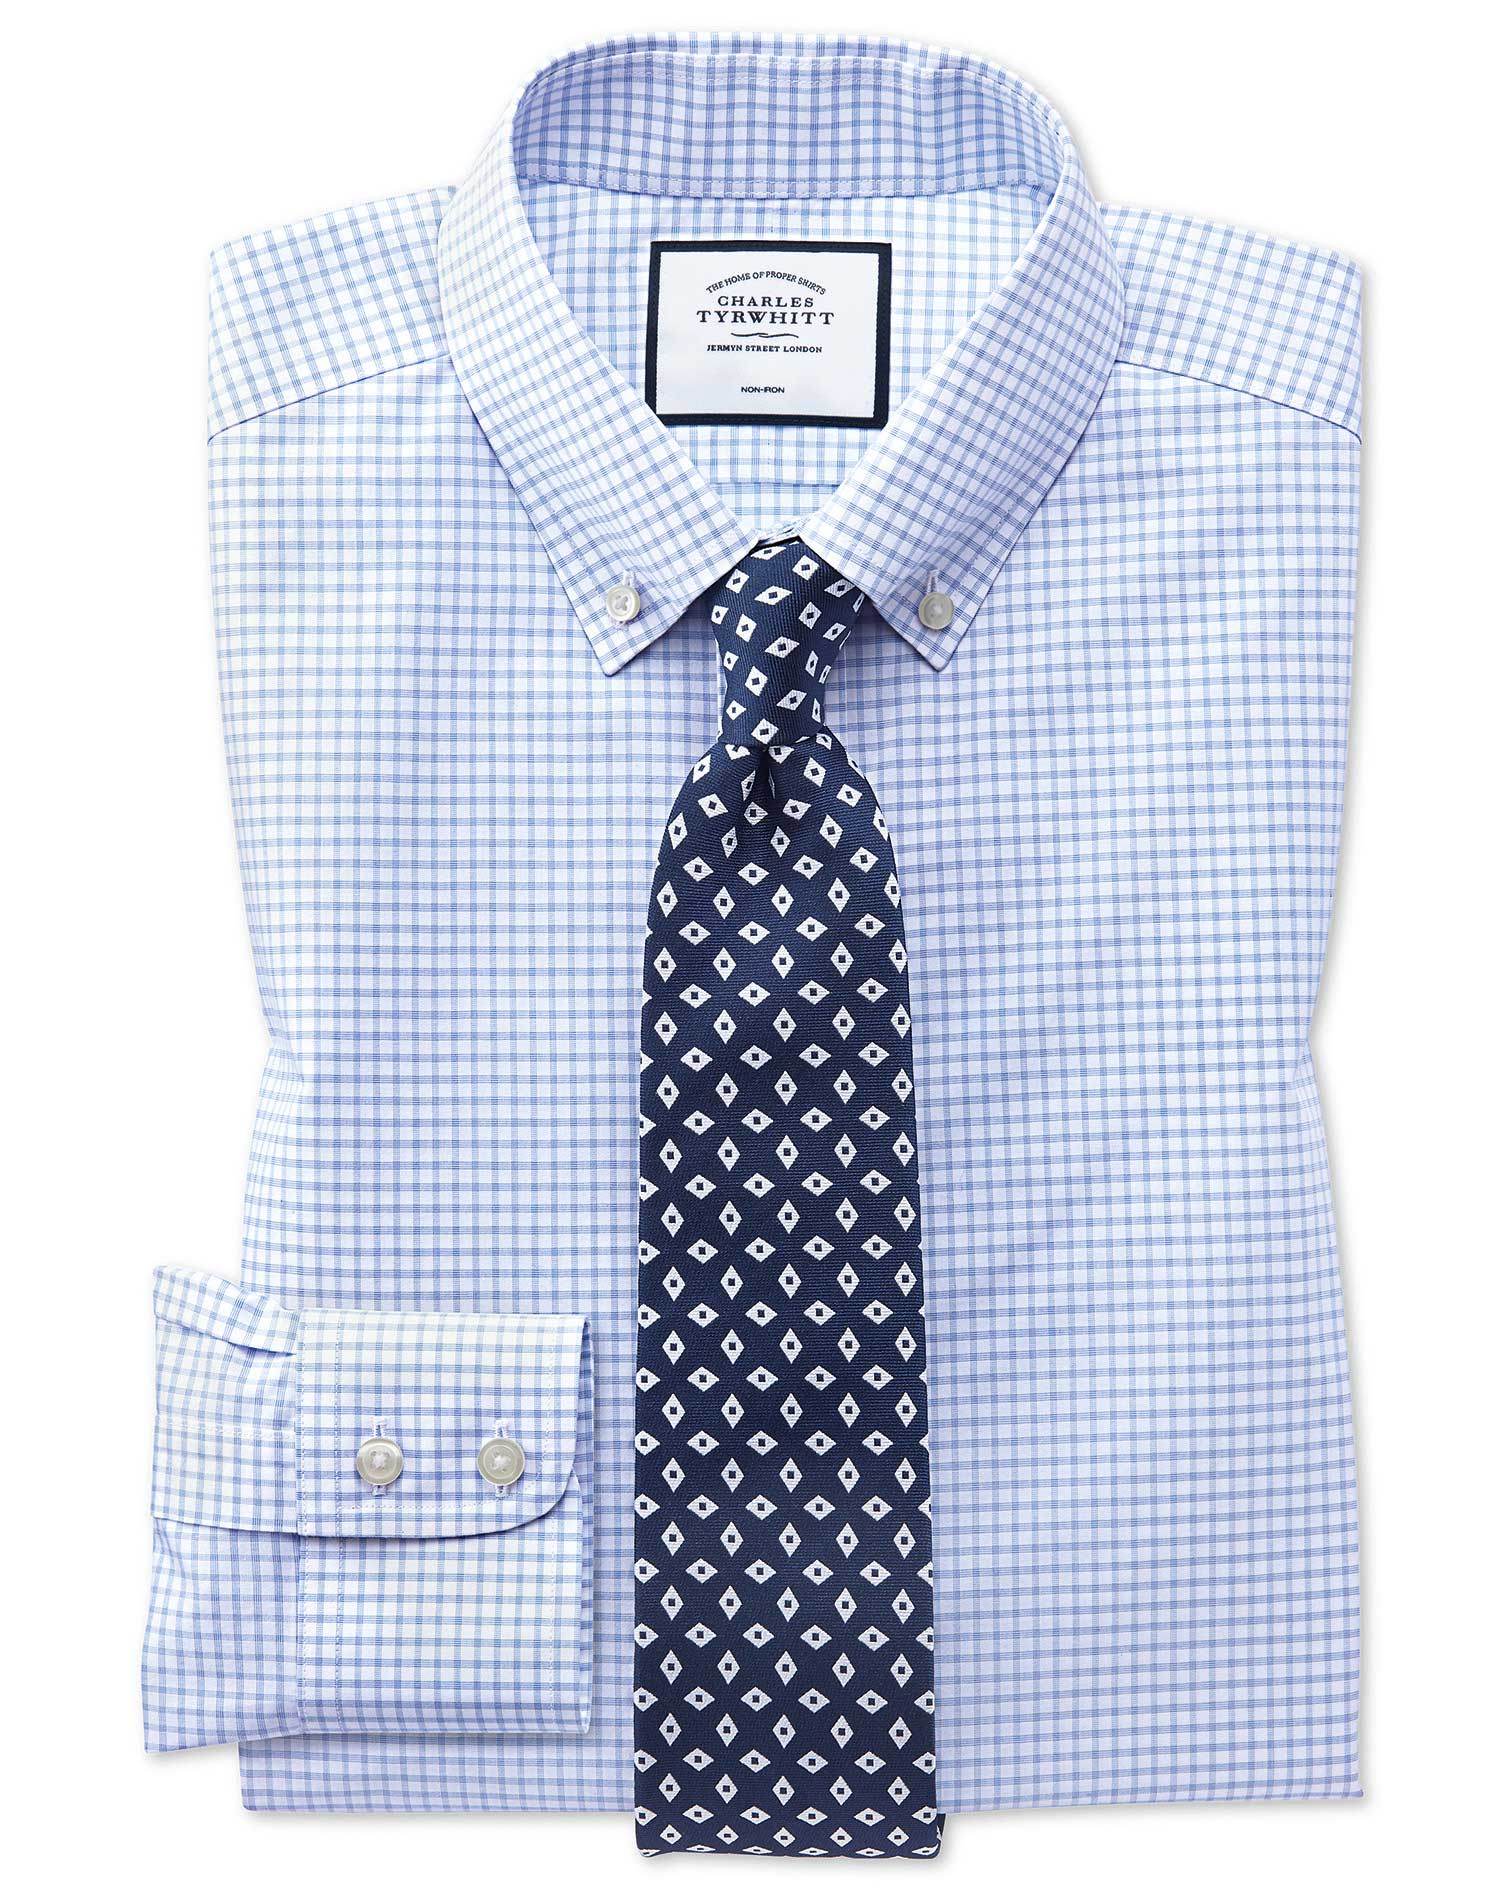 Classic Fit Non-Iron Sky Blue Windowpane Check Cotton Formal Shirt Single Cuff Size 16.5/36 by Charl